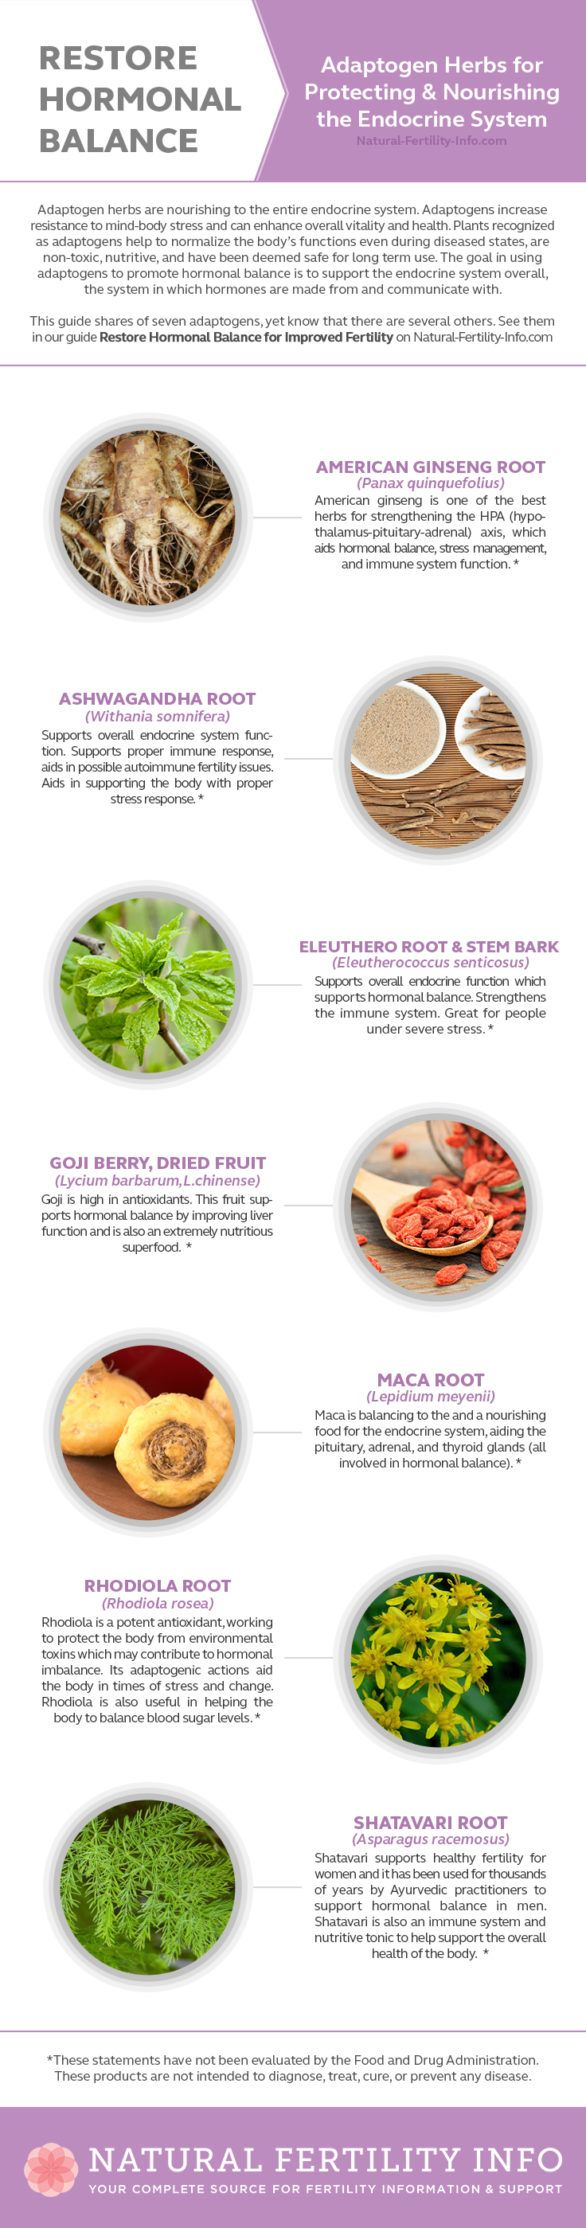 Restore Hormonal Balance: Adaptogen Herbs for the Endocrine System